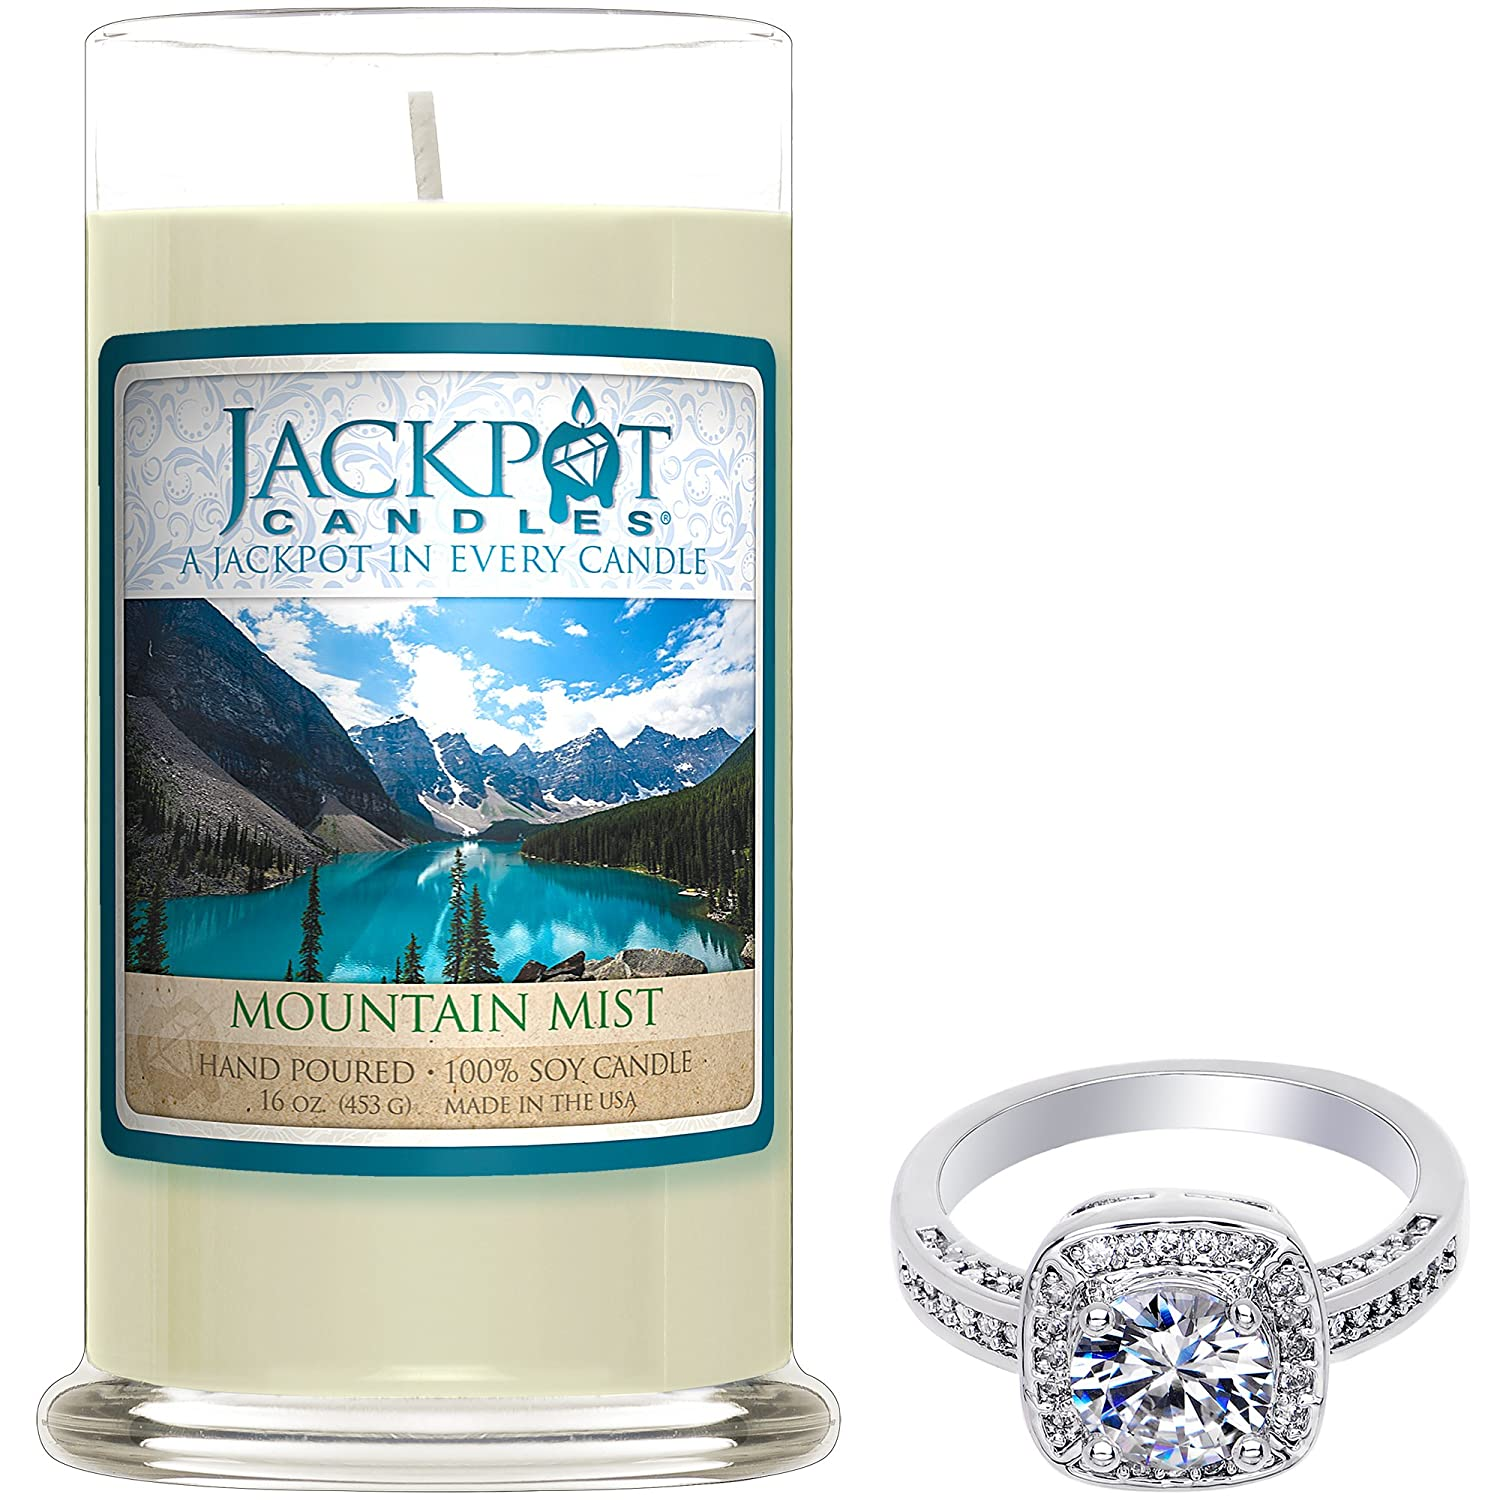 Mountain Mist Candle with Ring Inside (Surprise Jewelry Valued at $15 to $5, 000) Ring Size 6 Jackpot Candles FBA_CAN-420-RNG-6